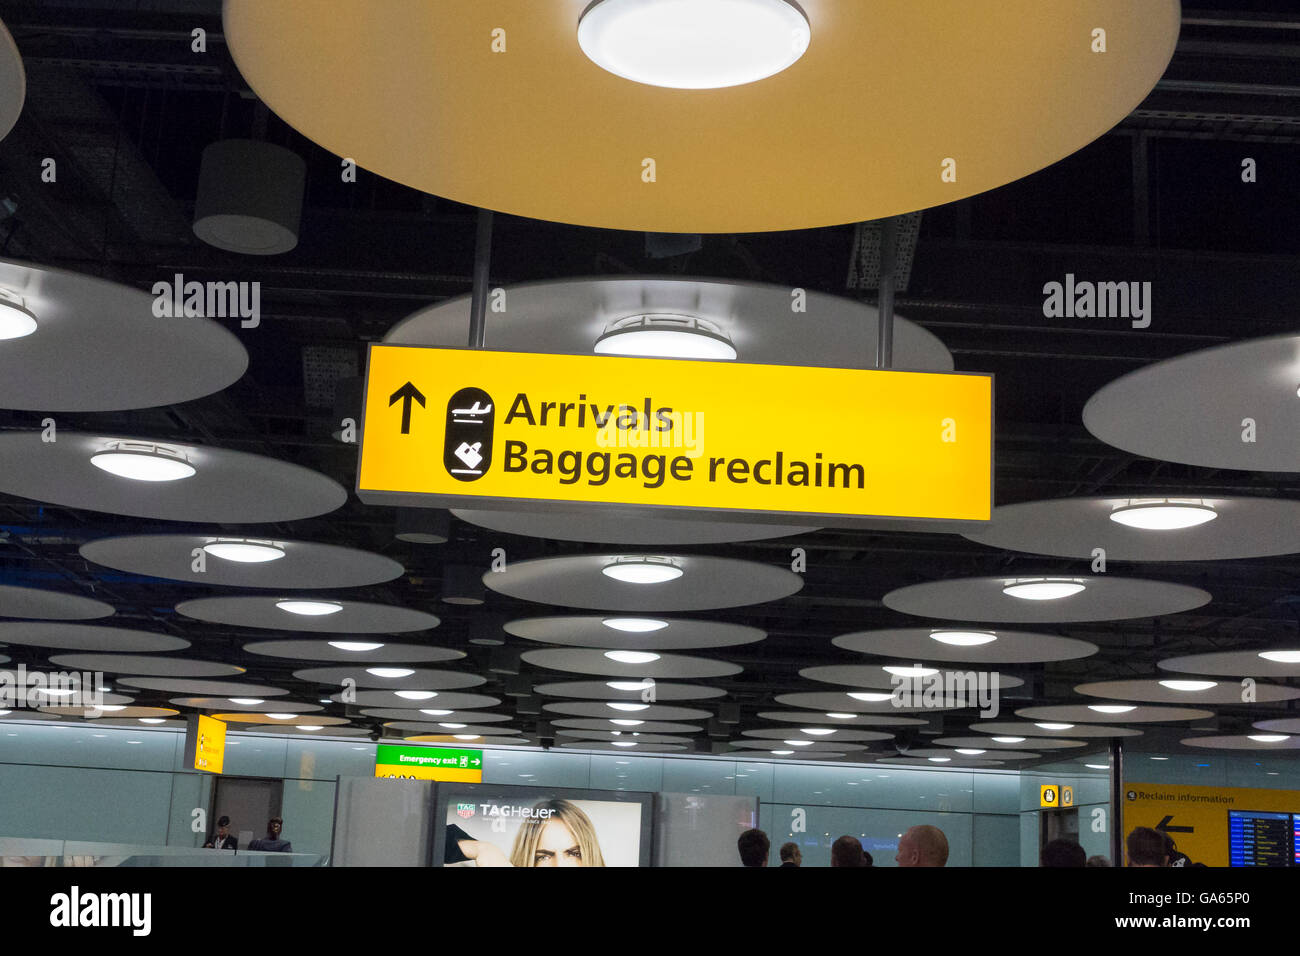 Arrivals baggage reclaim sign at a UK airport - Stock Image